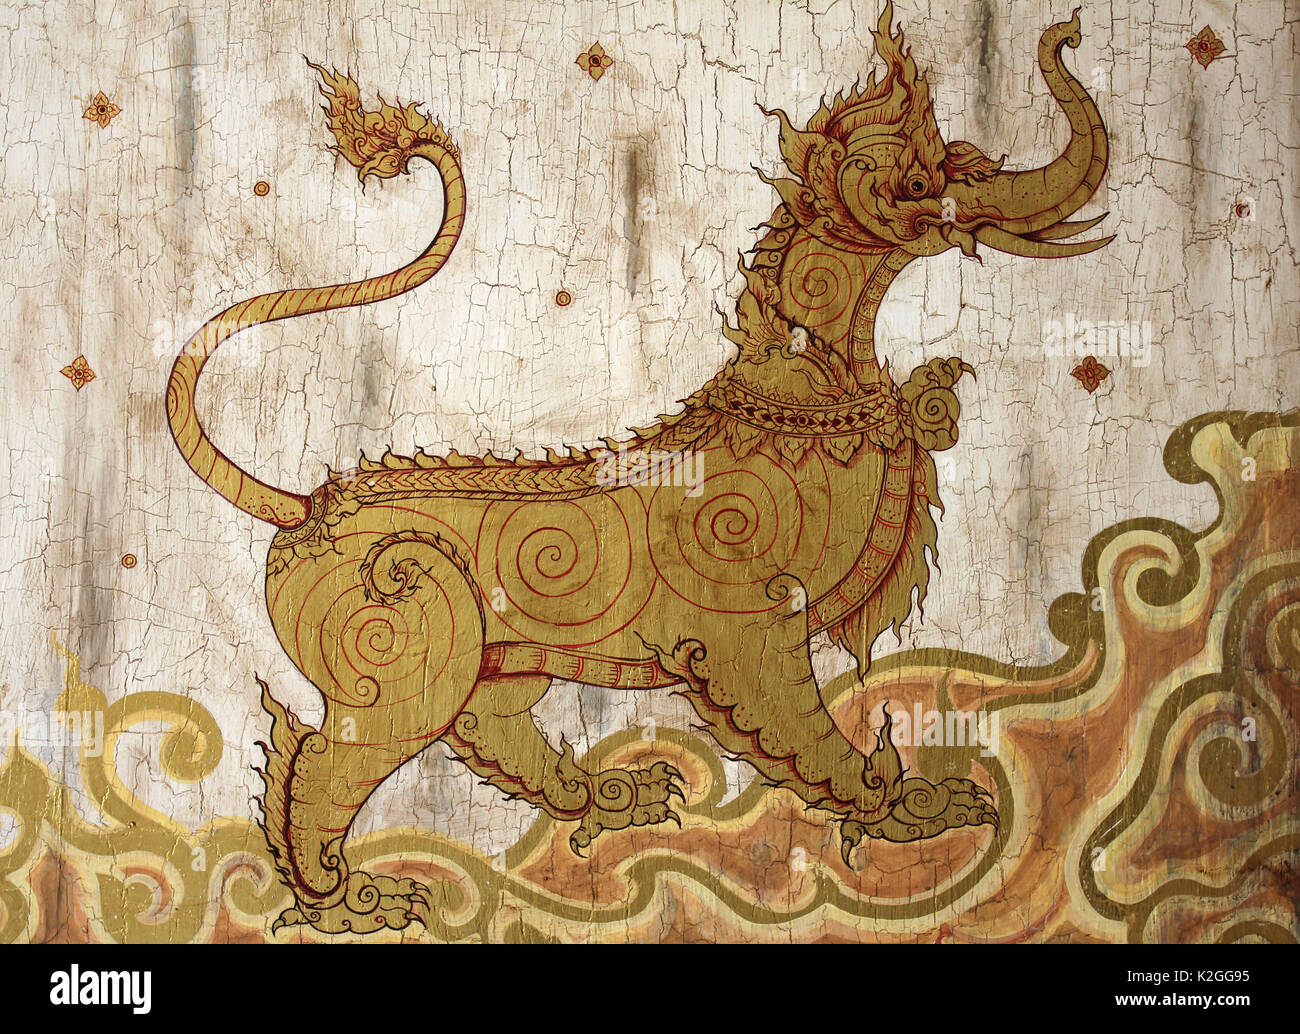 Thailand Mythical Creature 'Kochasri' - Body Of A Lion Head Of An Elephant - Stock Image